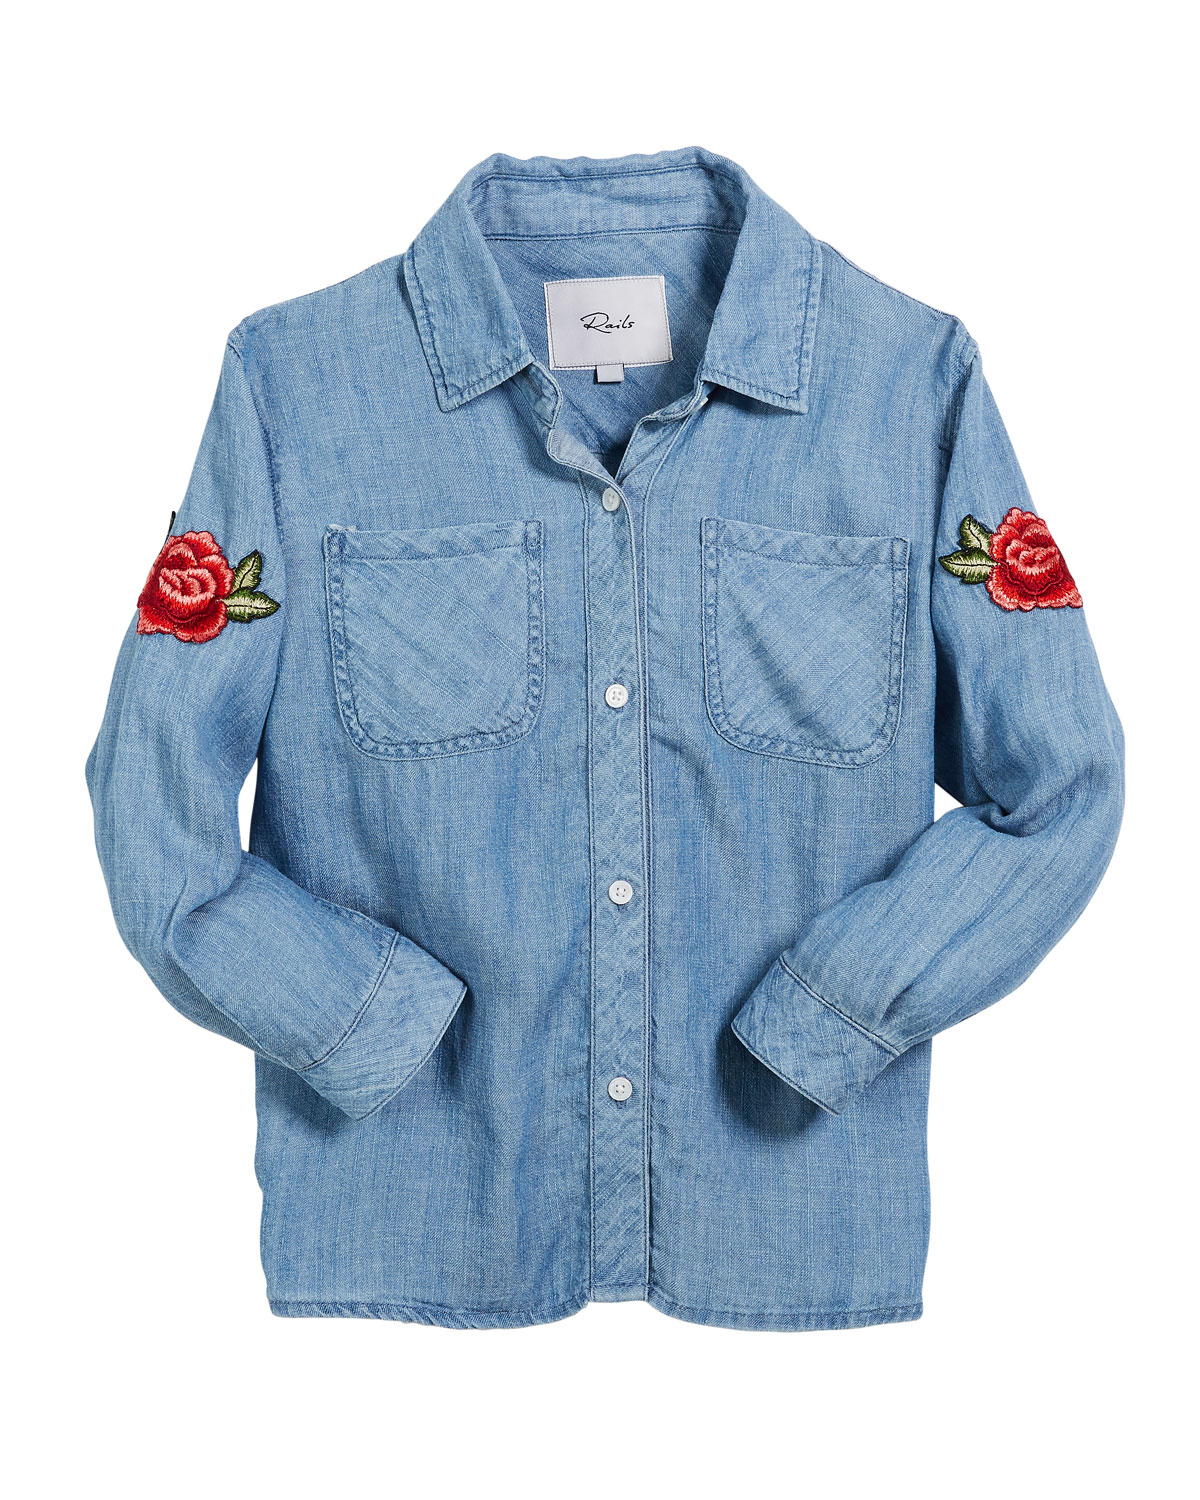 Little Carter Denim Top w/ Rose Patches, Size 6-14